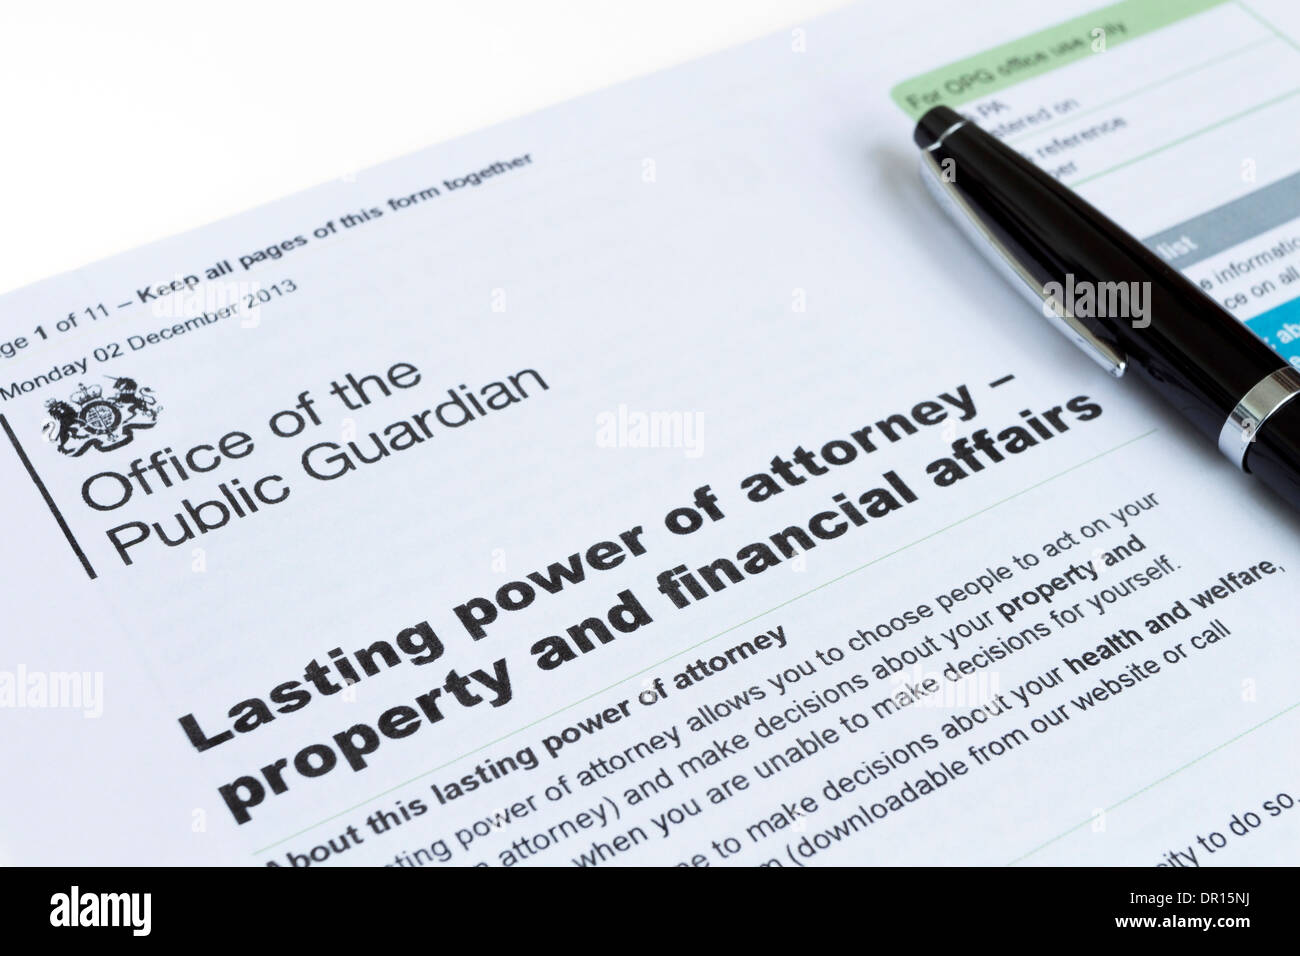 Lasting power of attorney property and financial affairs form from lasting power of attorney property and financial affairs form from the office of the public guardian uk solutioingenieria